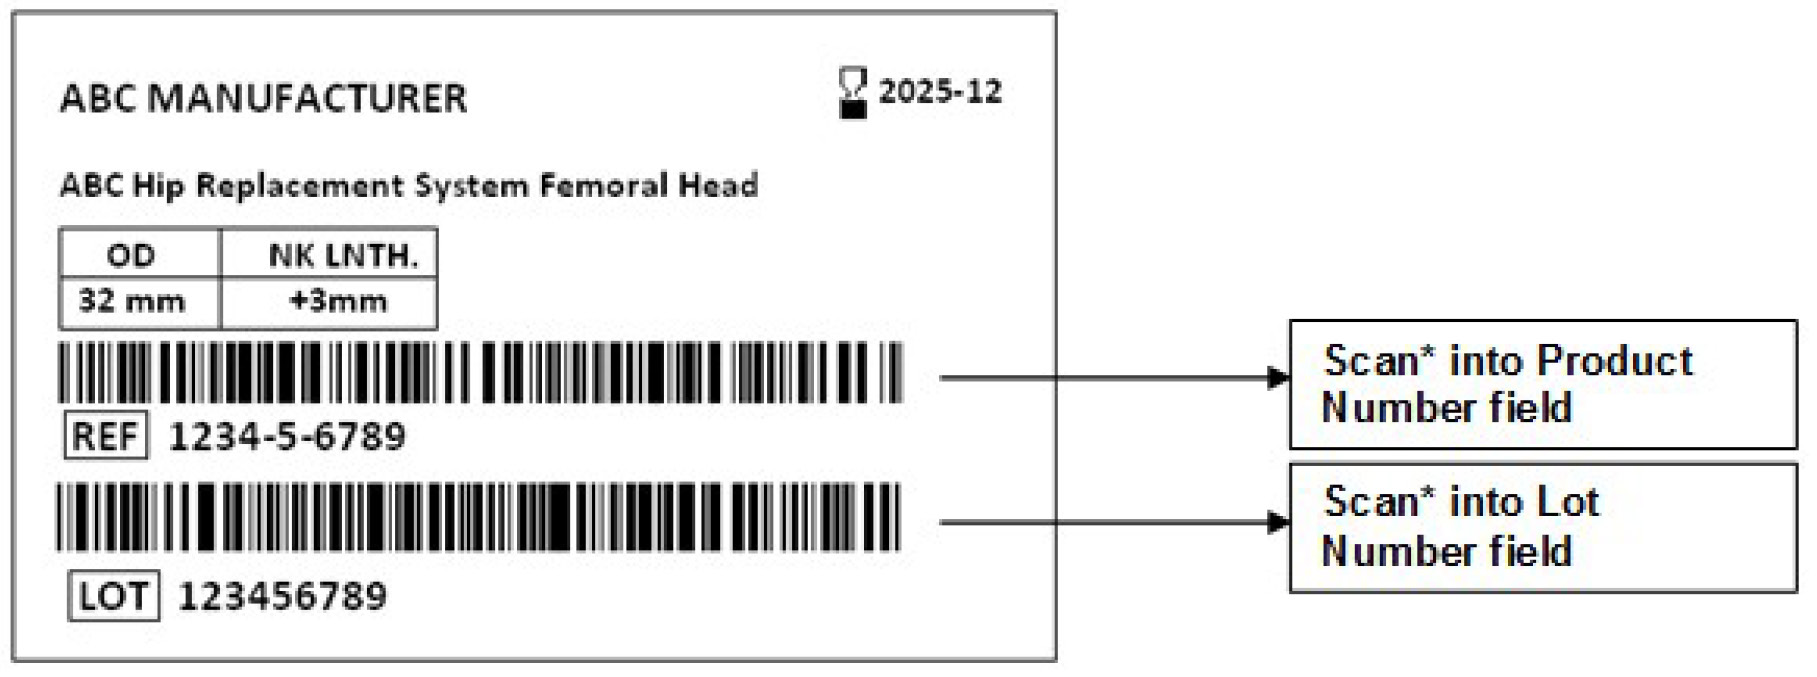 A sample sticker with 2 barcodes that are identified. The first (top) barcode is for the Product Number field and the second (bottom) barcode is for the Lot Number field.